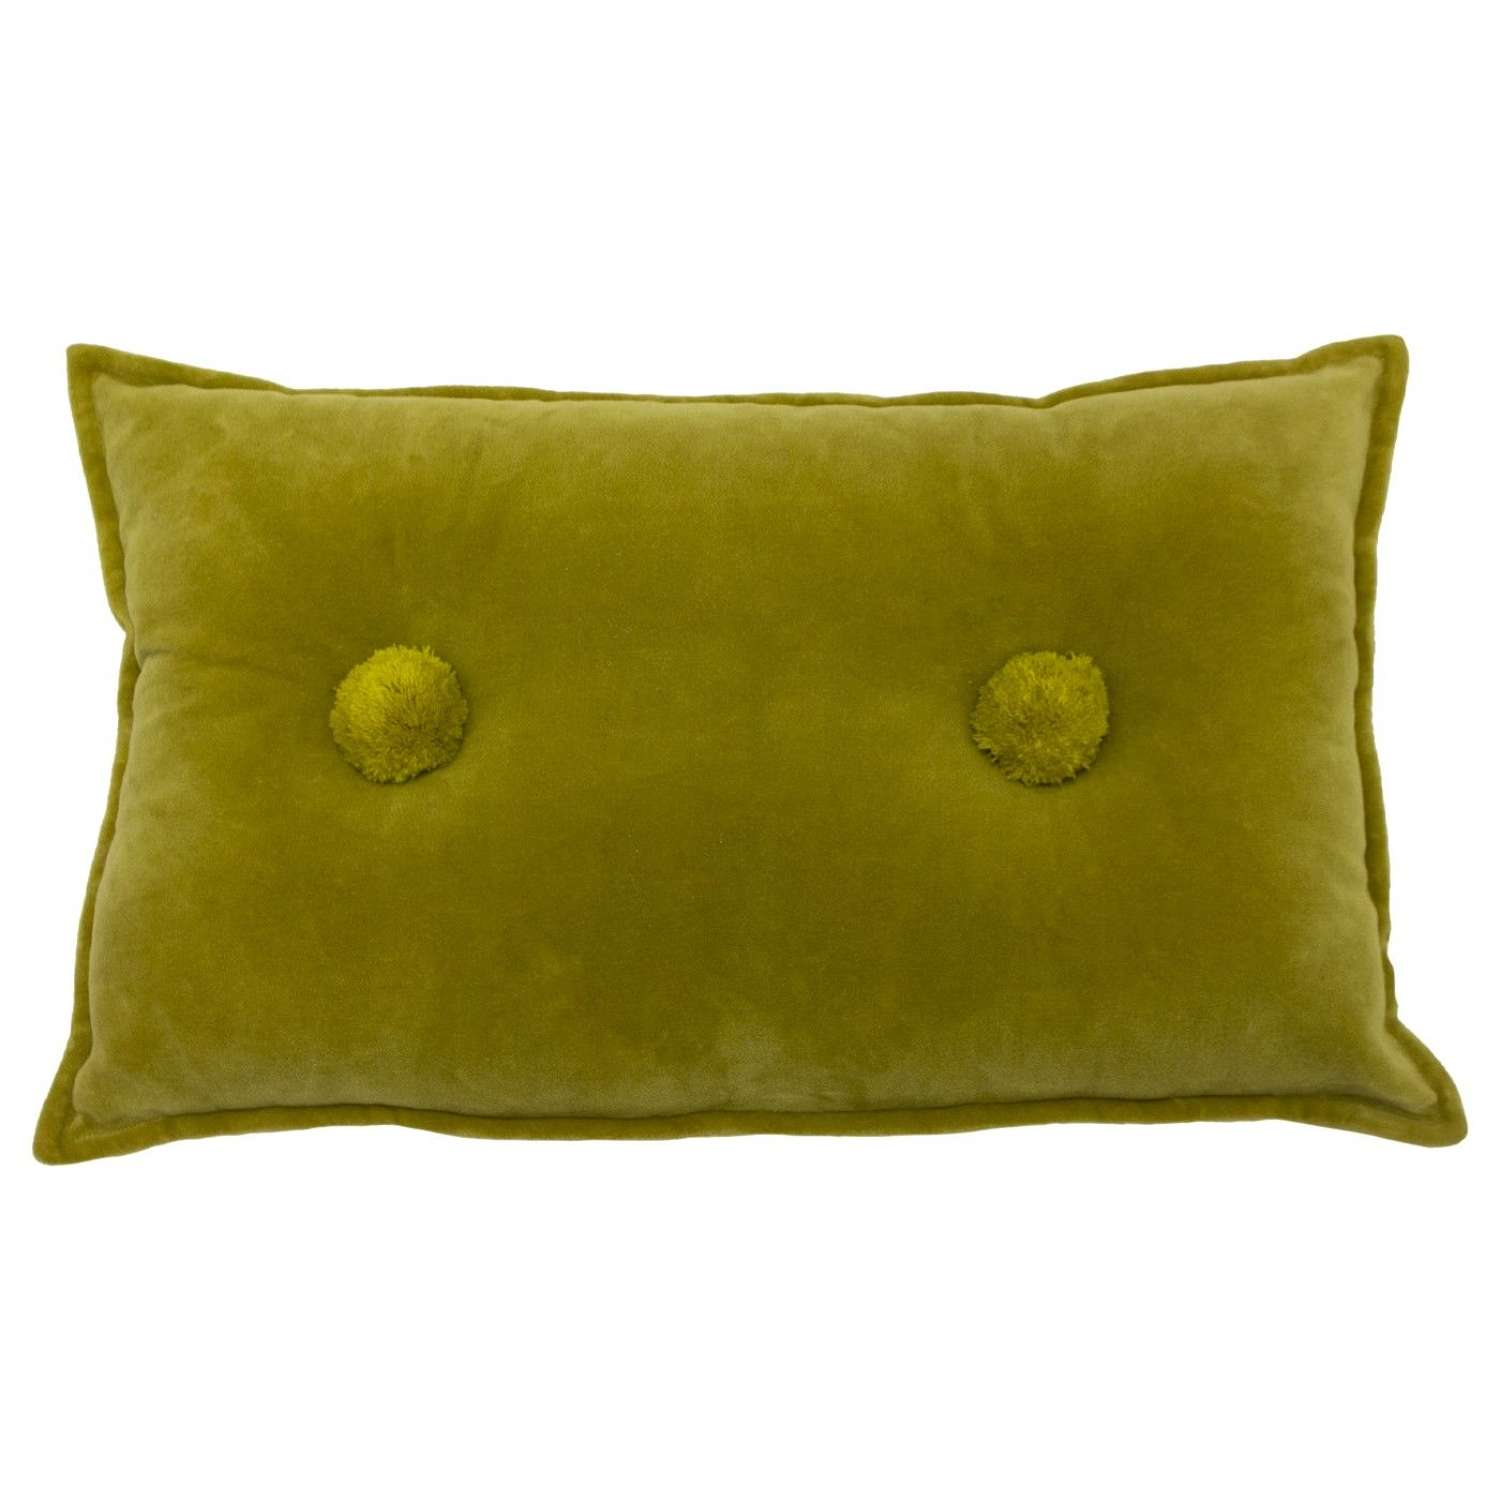 Soft Oblong Cushion with Double Tufted Pom Pom - Mustard